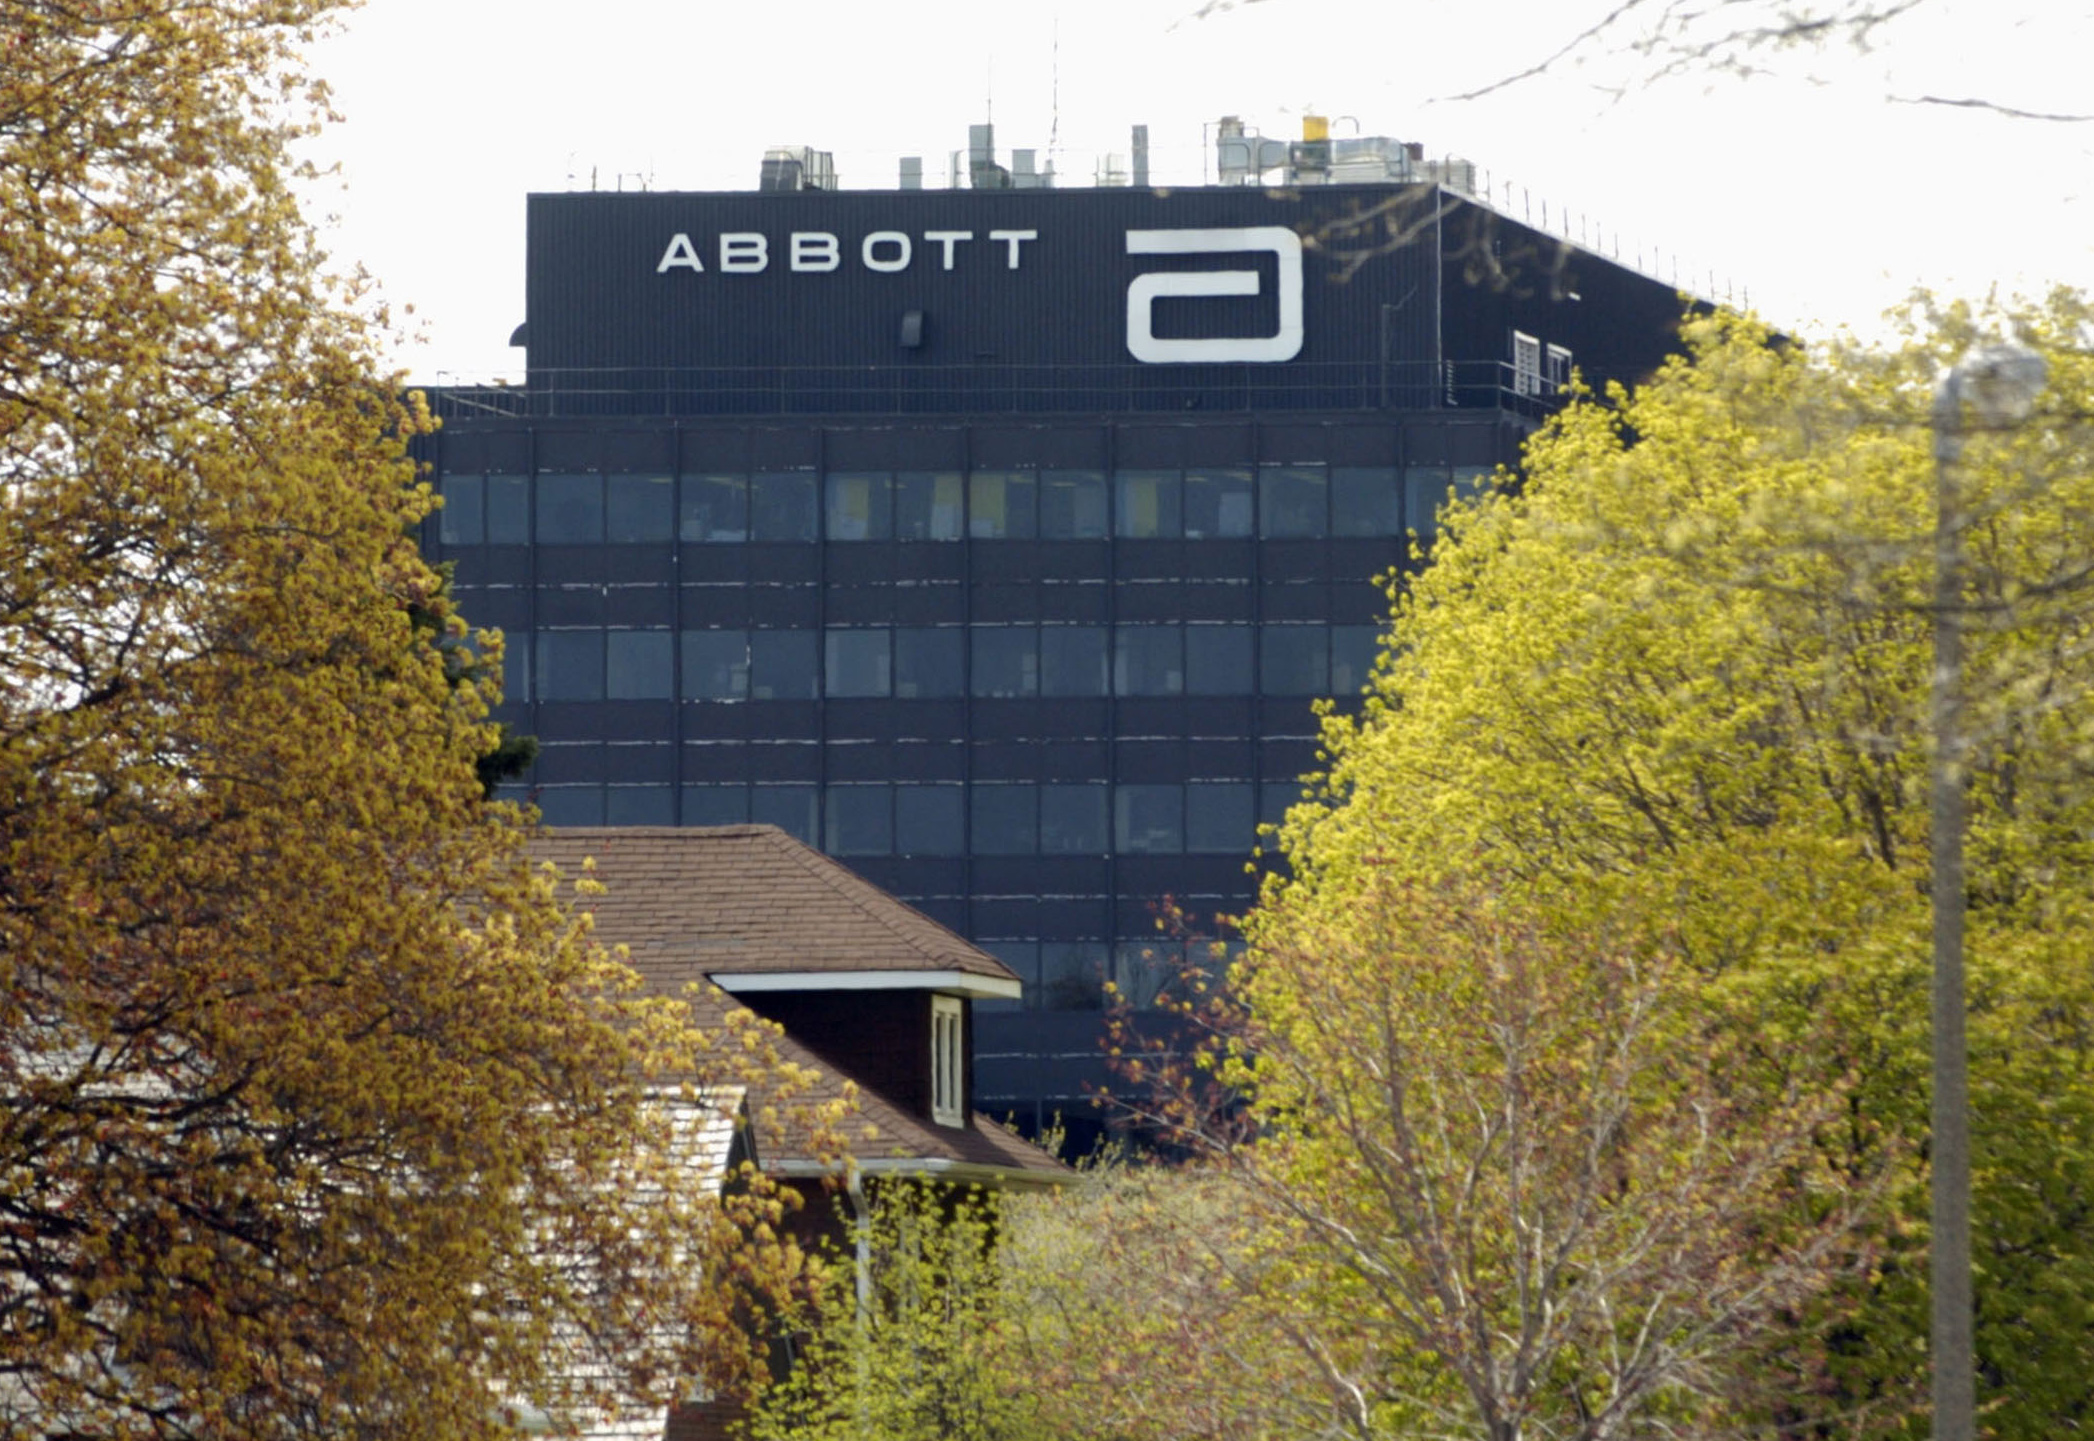 Abbott Labs to buy St Jude Medical for US$19.3bn